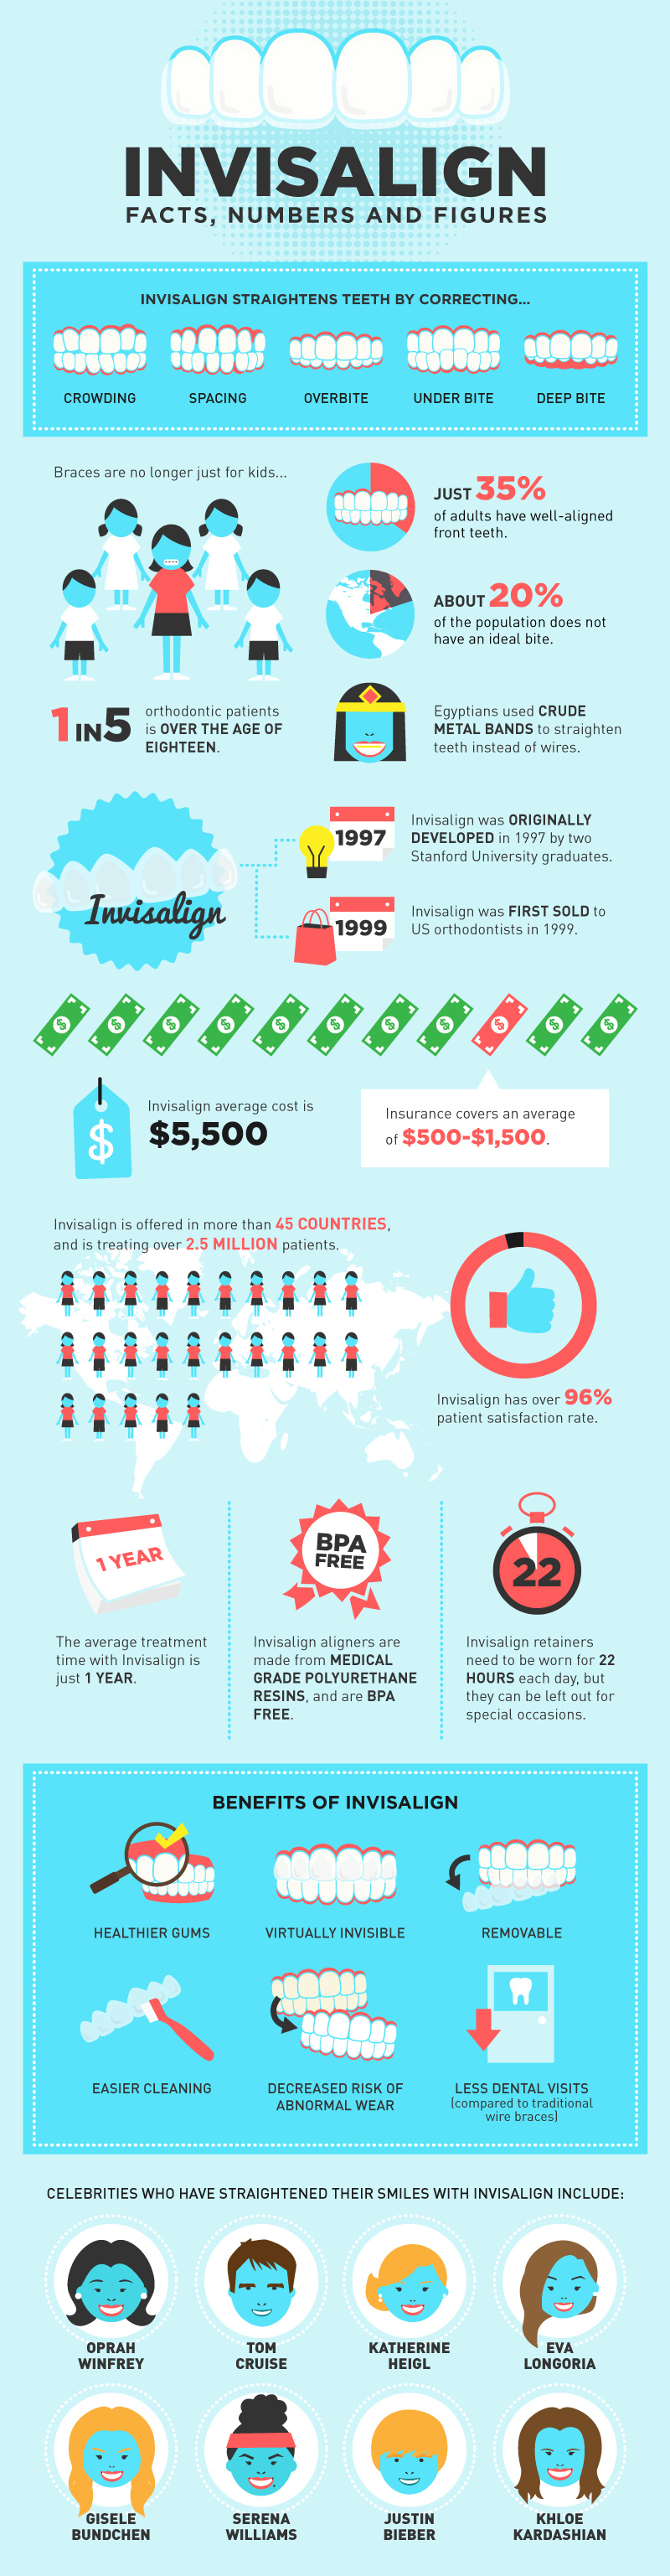 Patients looking for invisalign in vancouver, Kitsilano, UBC, Point Grey. Here's a great invisalign infographic